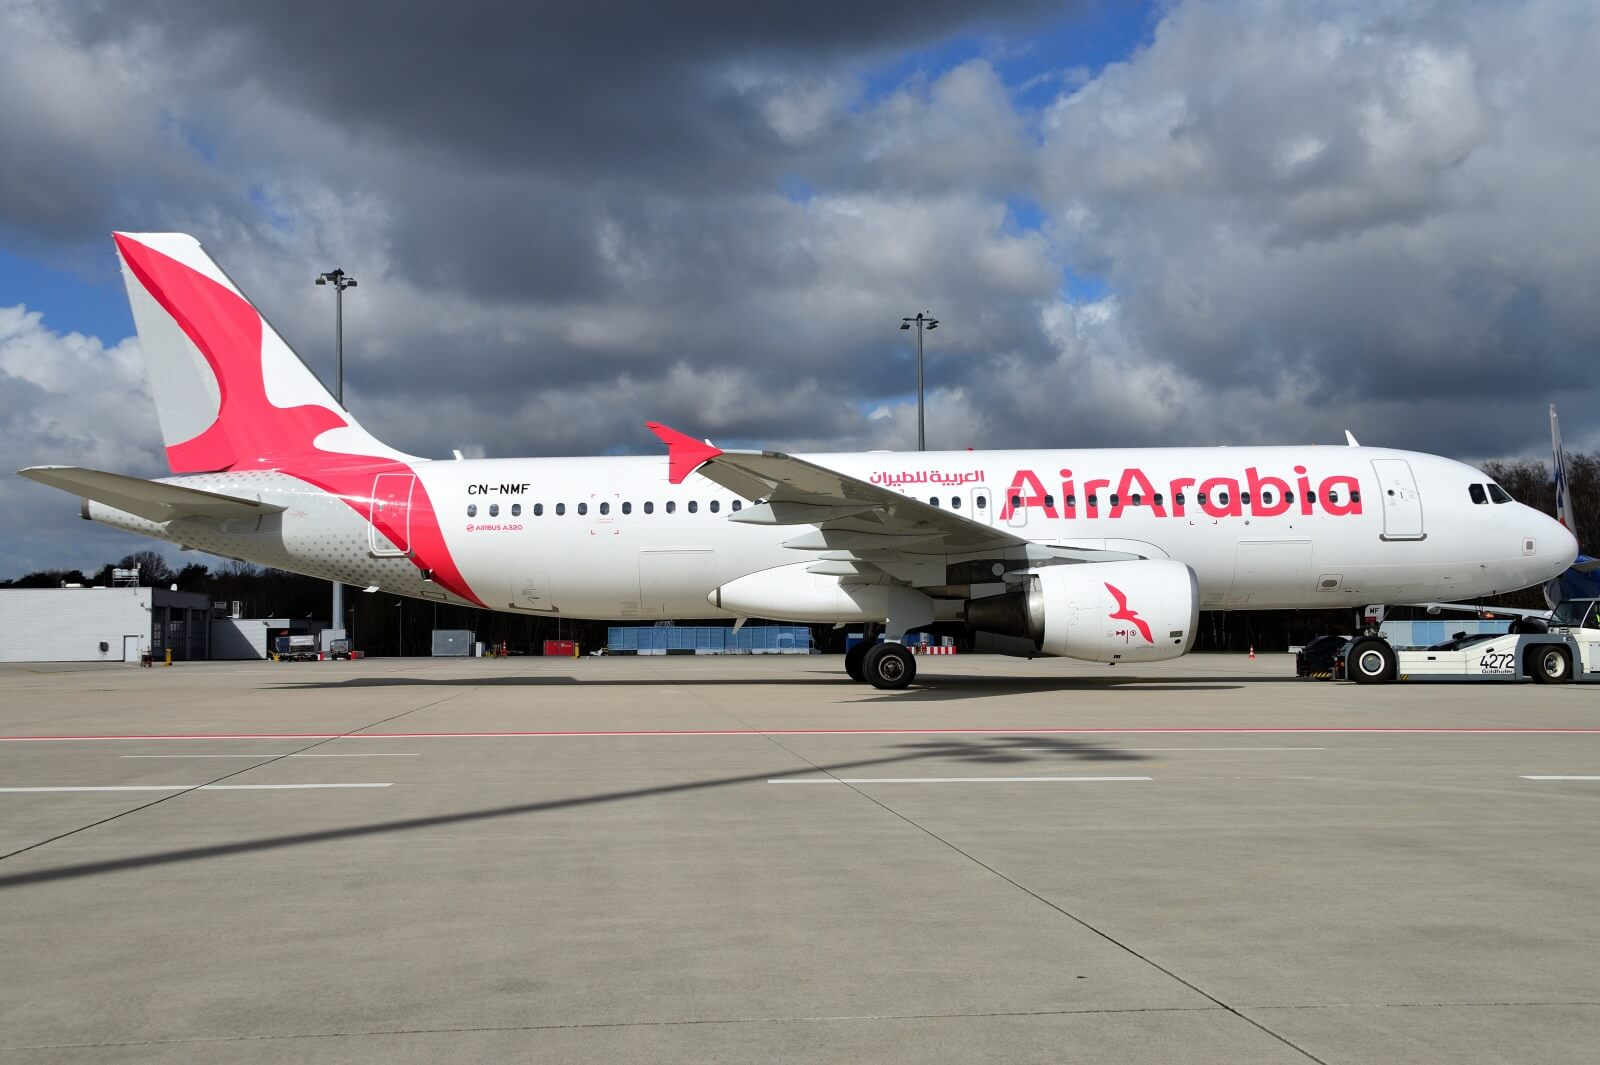 120 jets: Air Arabia places $14 billion order with Airbus